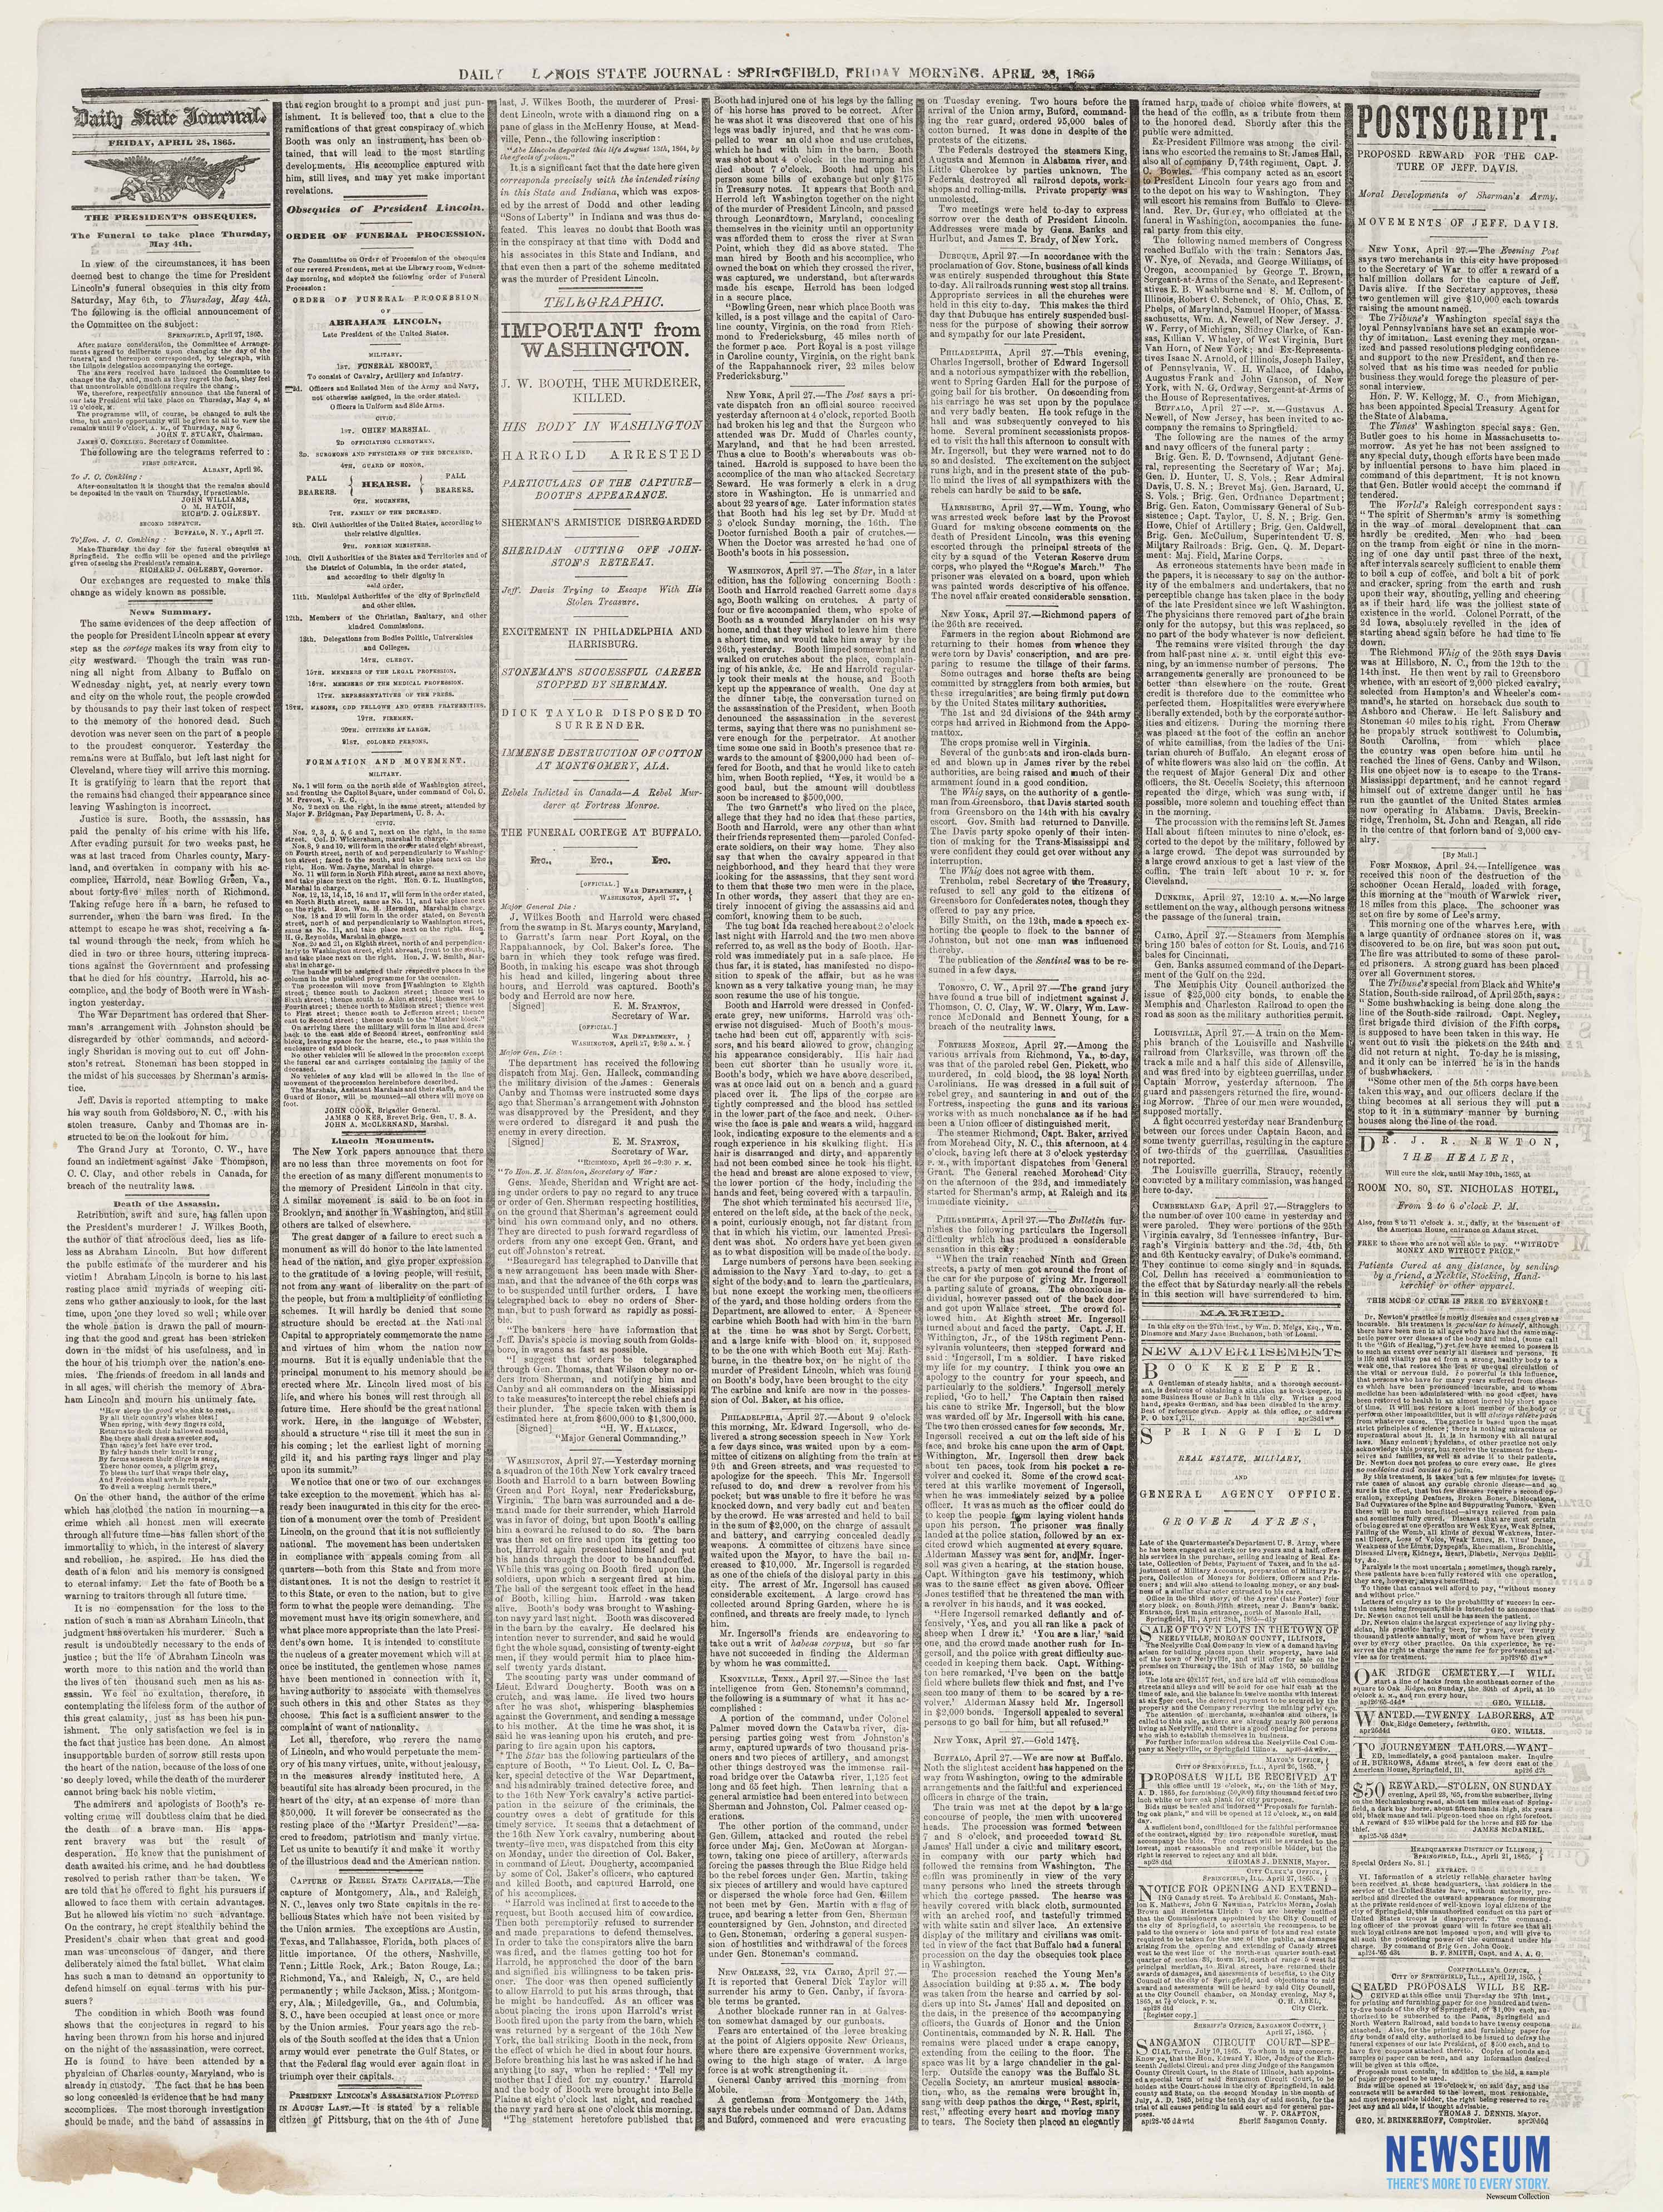 Illinois Daily State Journal, April 28, 1865